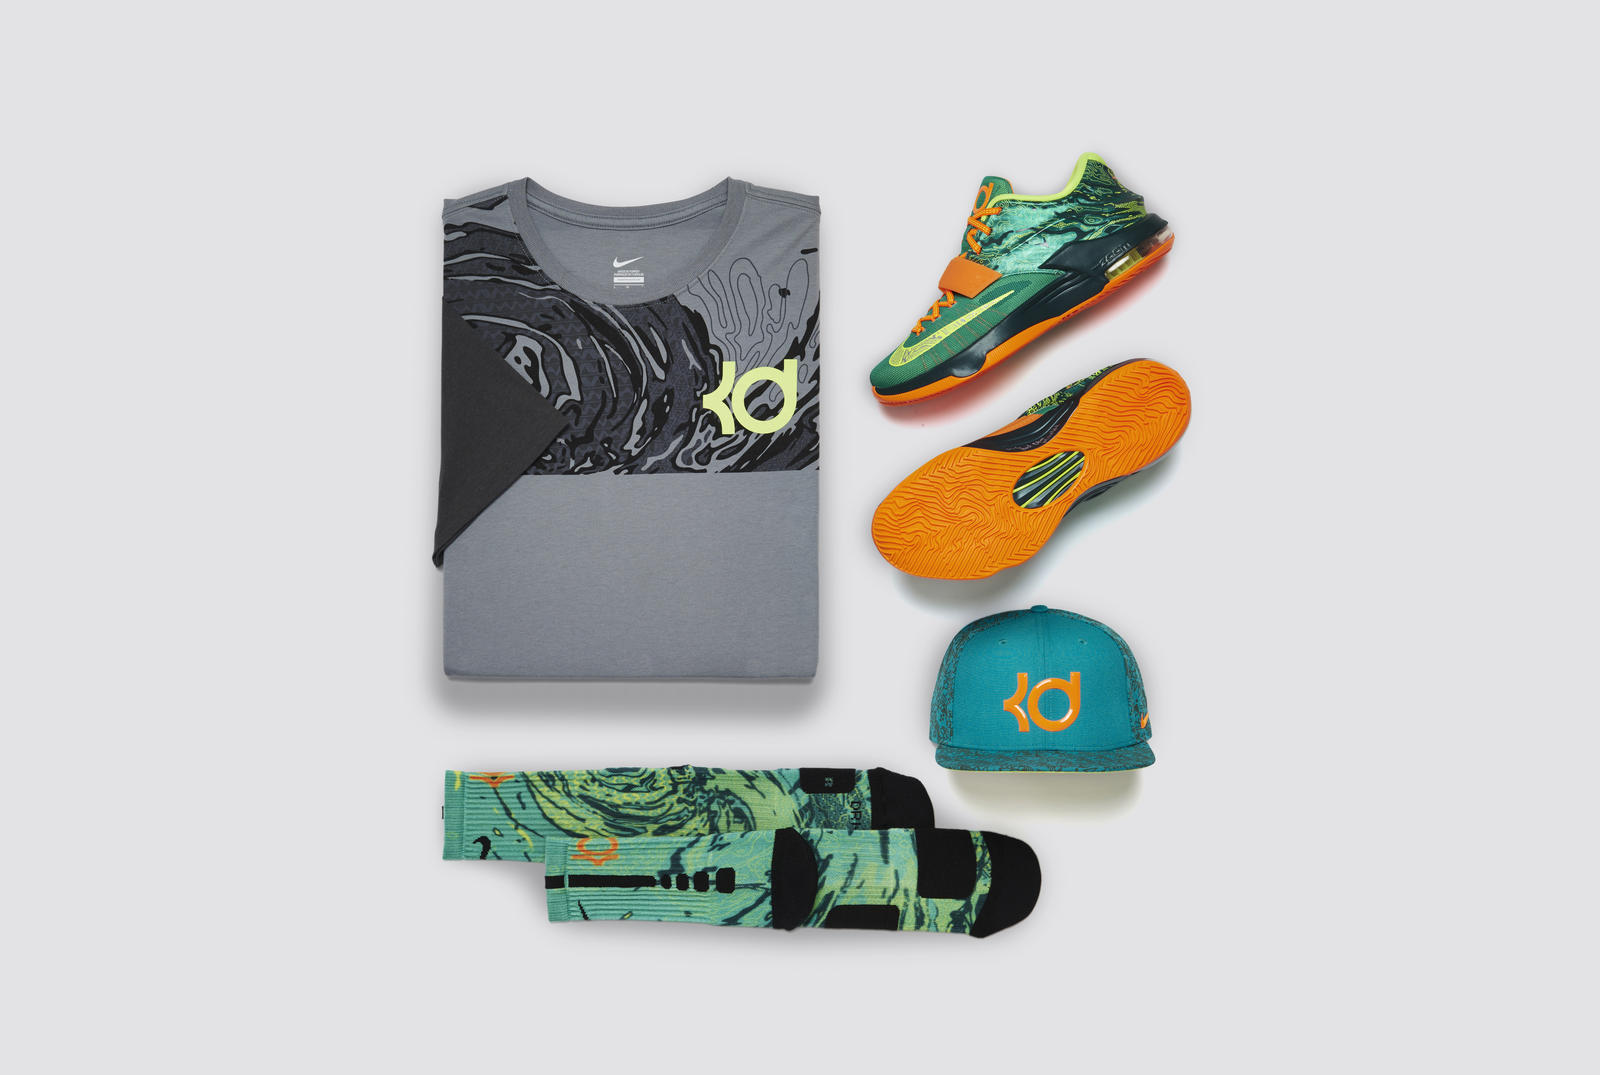 Kd7 weatherman shoe brings heat to the forecast nike news for Kevin durant weatherman shirt